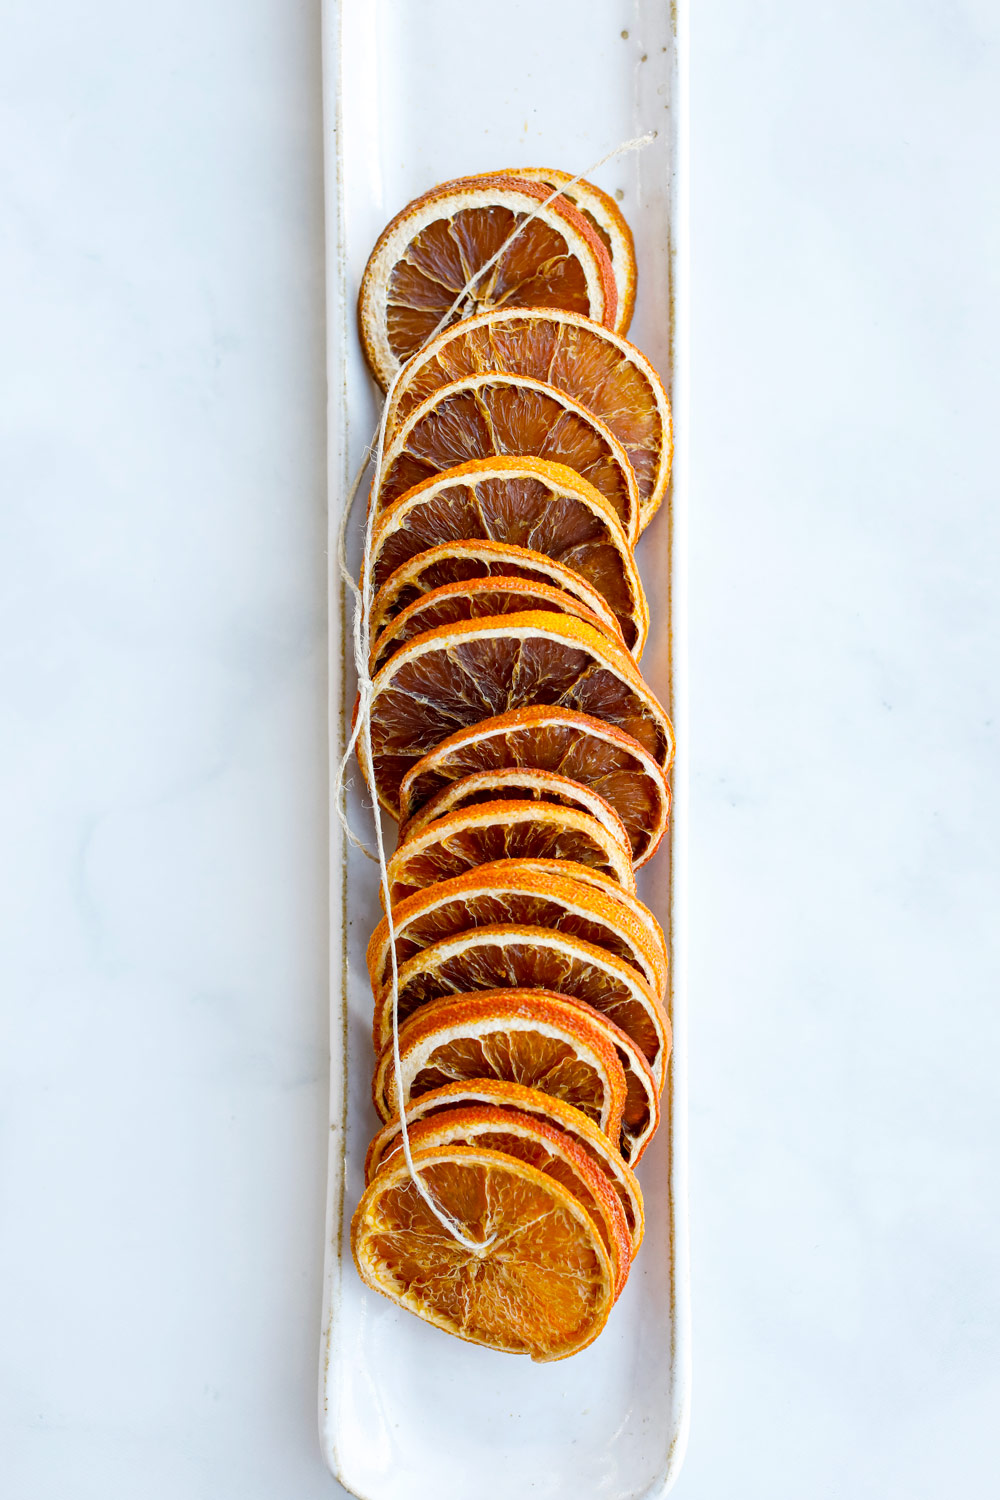 still-life-food-photographer-dried-oranges-dehydrated-madison-wi-ruthie-hauge-photography-.jpg